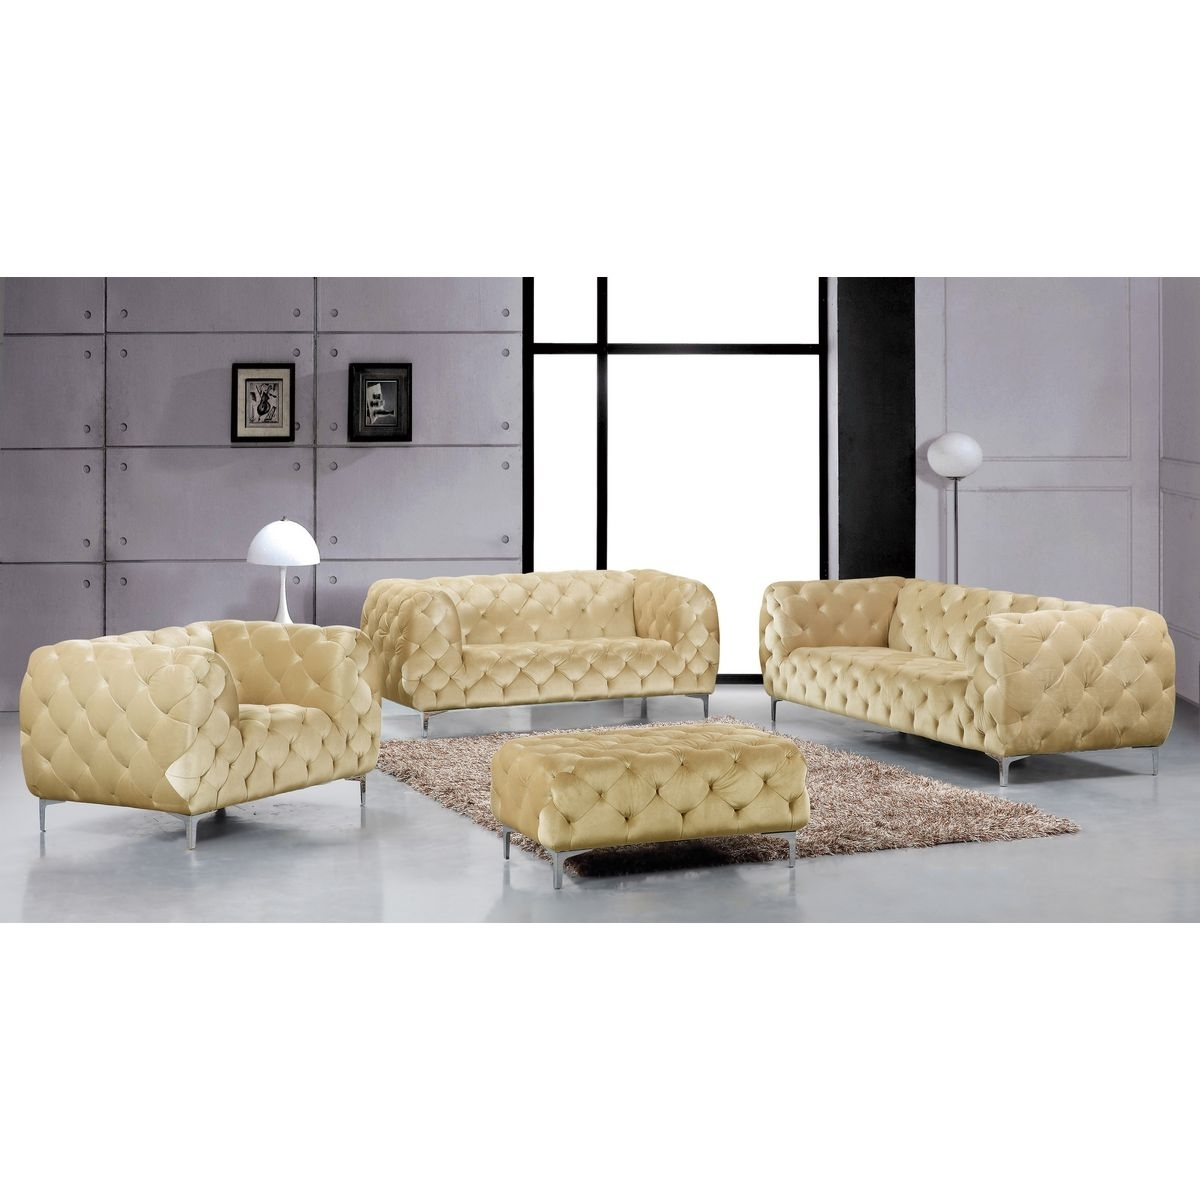 Latest Kijiji Kitchener Sectional Sofas Inside Furniture : Green Tufted Chaise Lounge Furniture Making Ottawa (View 9 of 15)